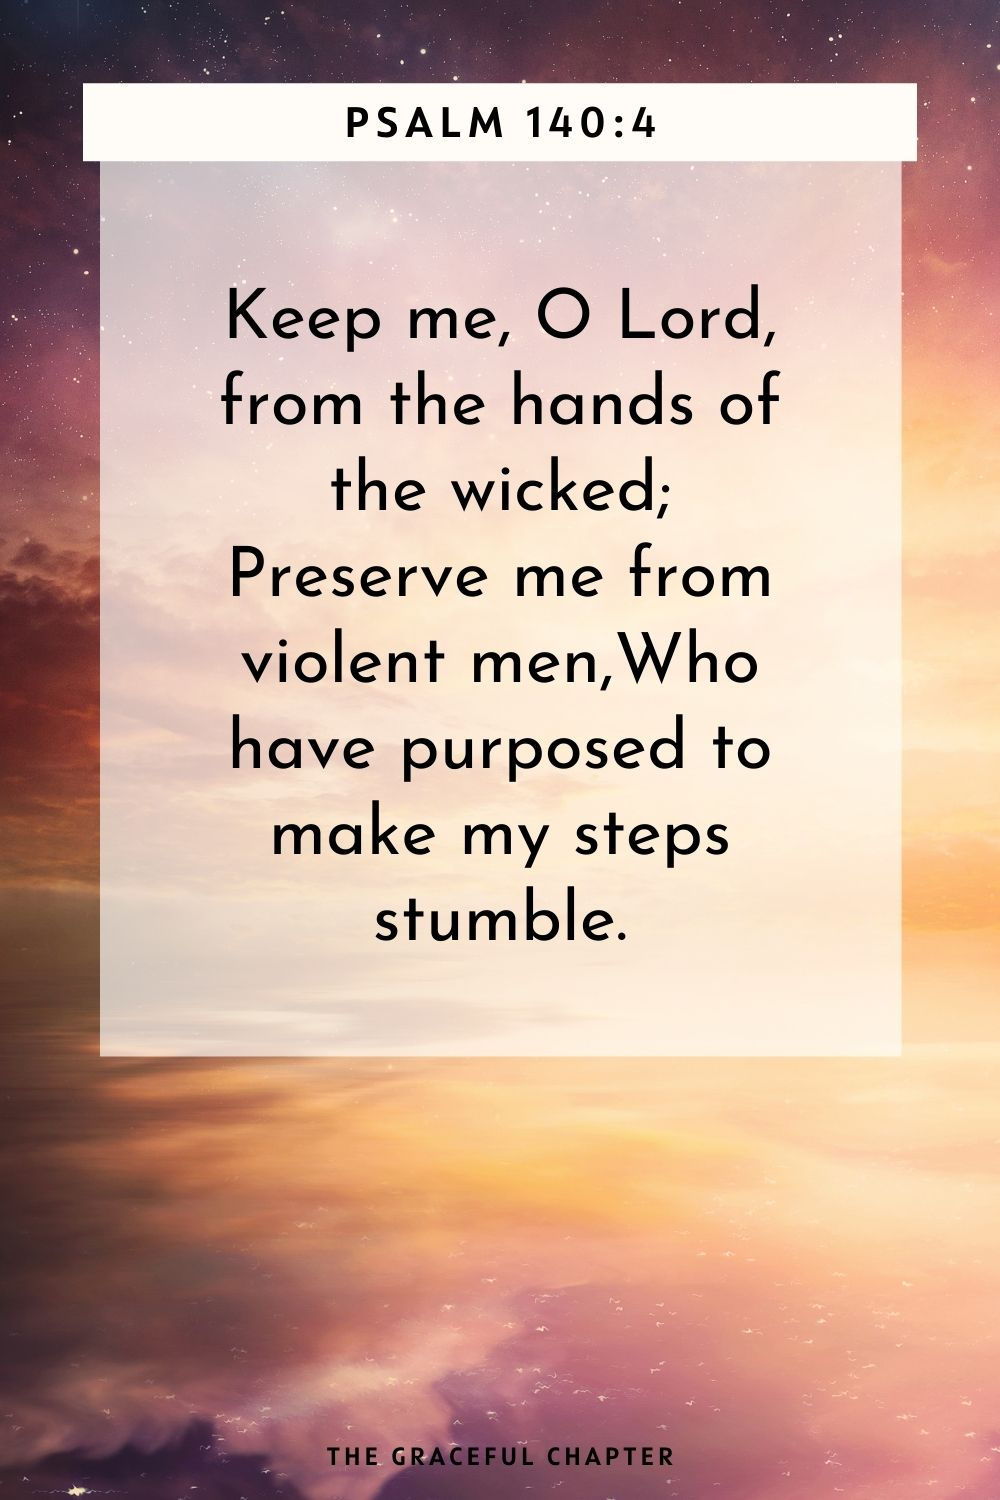 Keep me, O Lord, from the hands of the wicked; Preserve me from violent men, Who have purposed to make my steps stumble. Psalm 140:4